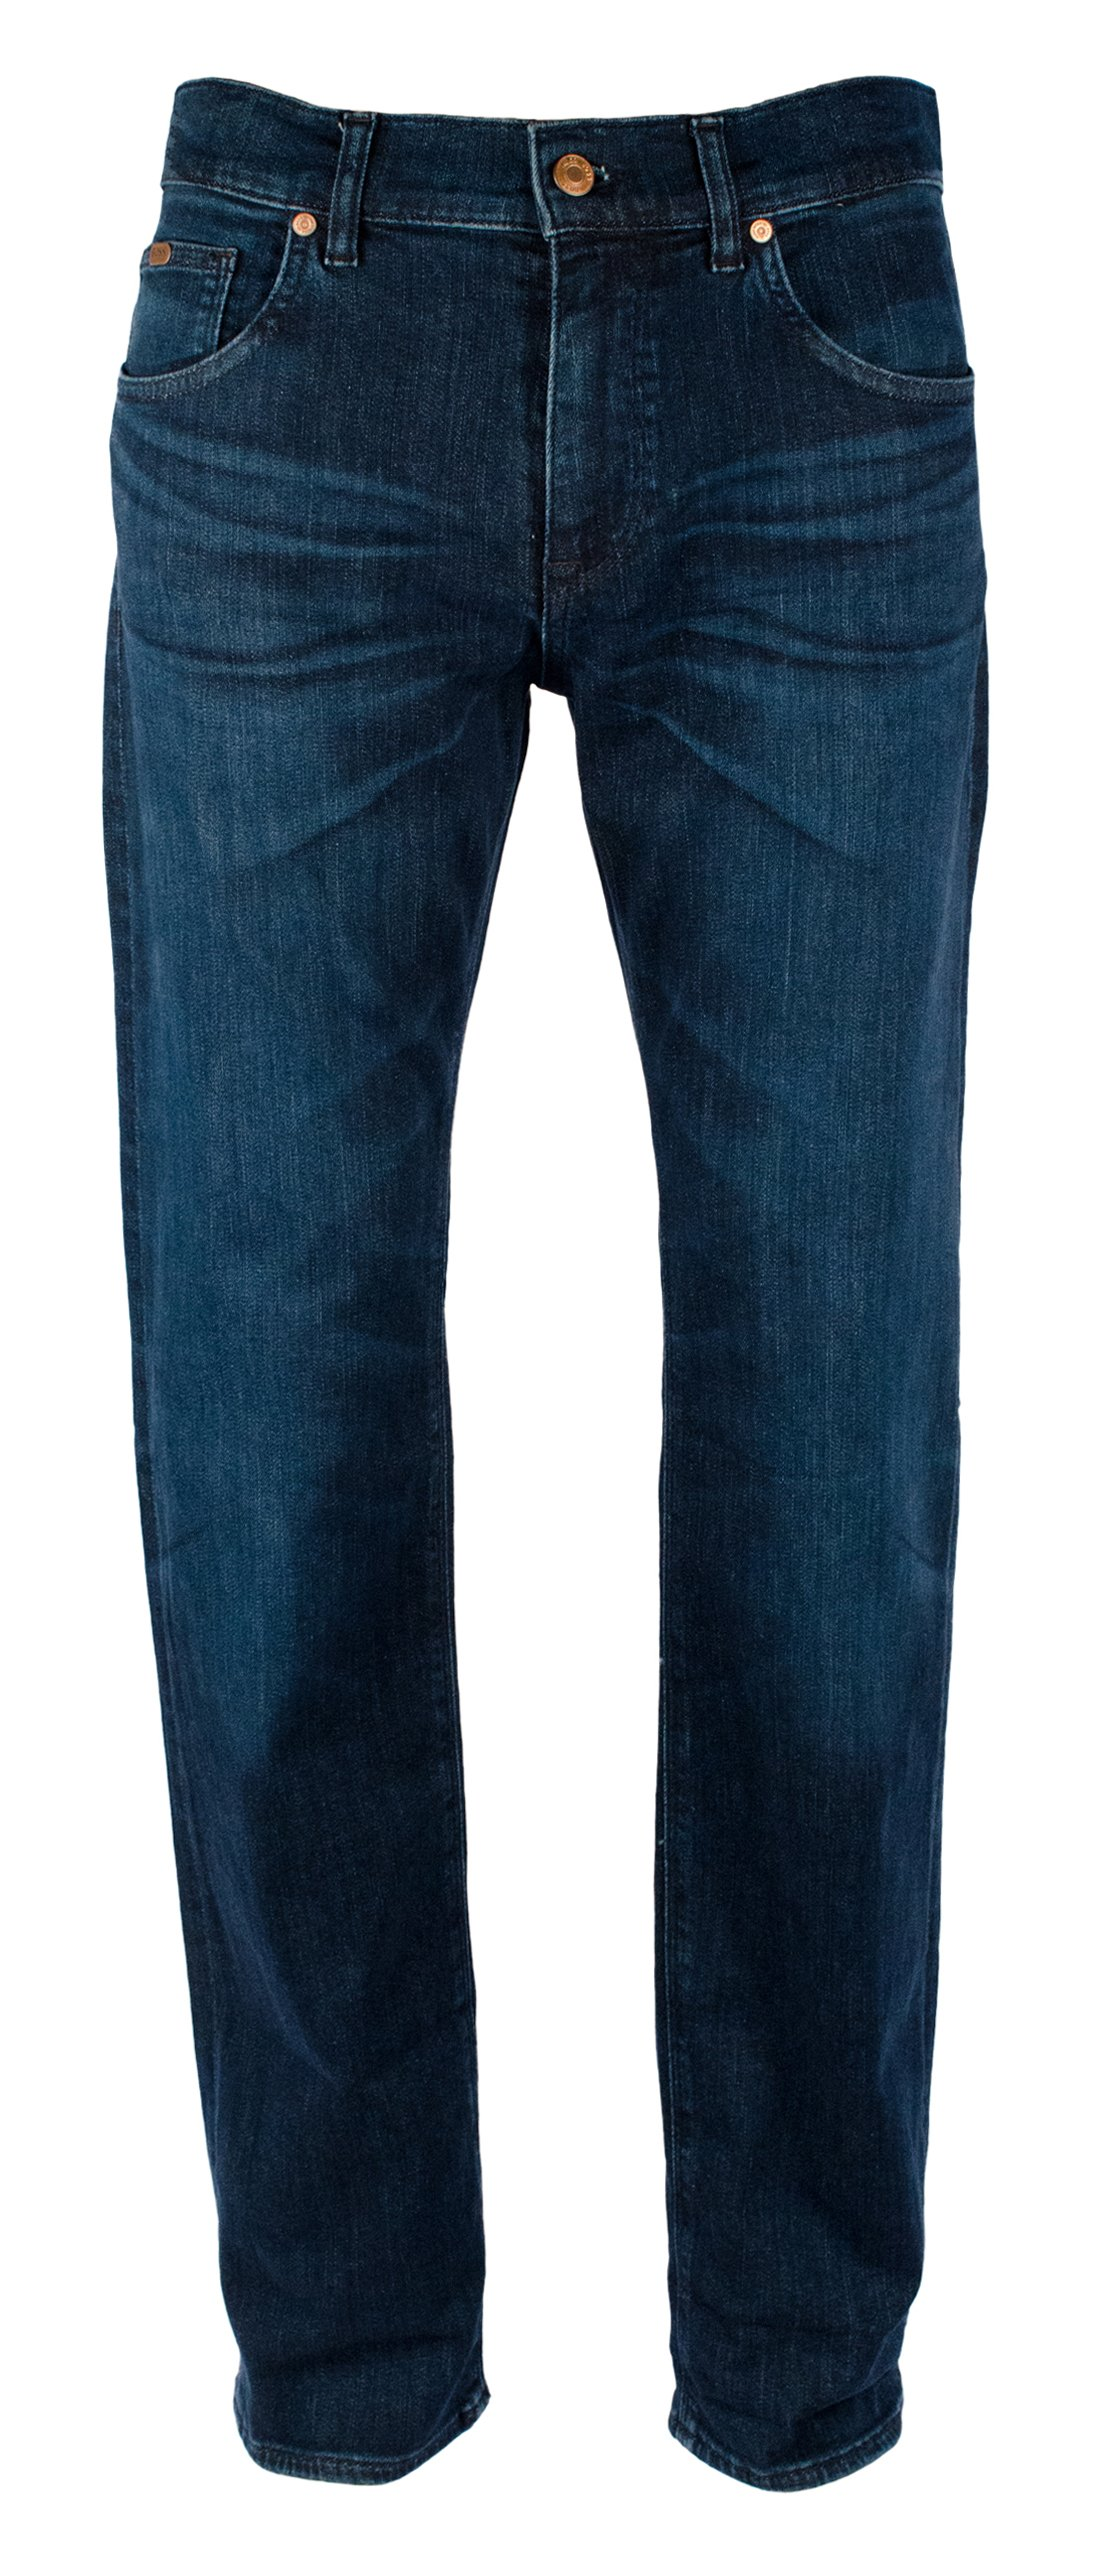 Hugo Boss Men's Green Label Maine Stretch Jeans-D-36Wx32L by HUGO BOSS